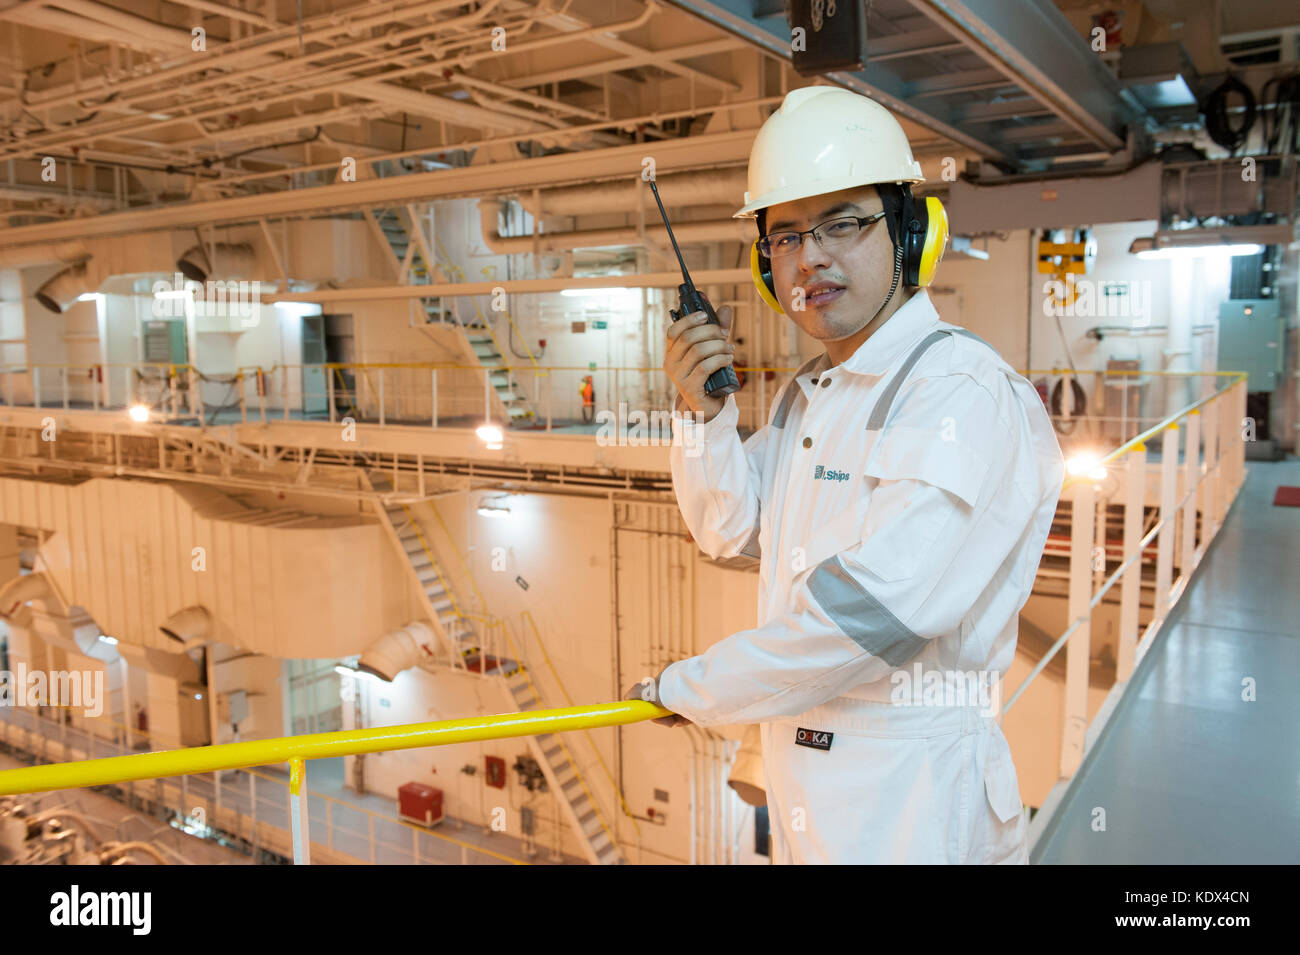 Ship's engineering officer in engine room talking on VHF radio Stock Photo